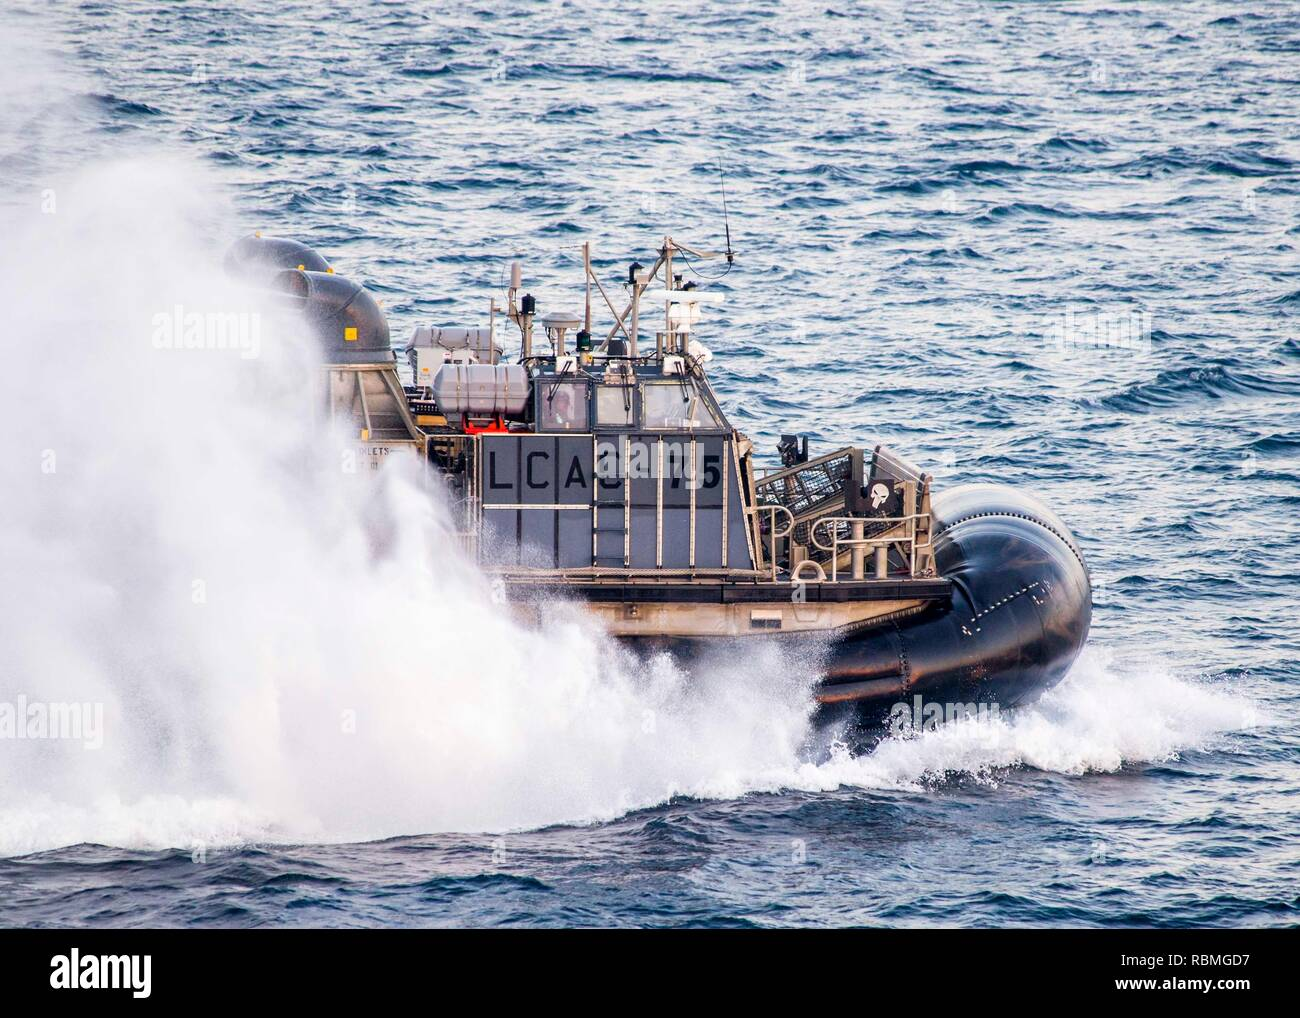 190104-N-PH222-1237 ARABIAN SEA (January 4, 2019) Landing Craft Air Cushion (LCAC) 75, attached to Assault Craft Unit 5, embarked aboard the San Antonio-class amphibious transport dock ship USS Anchorage (LPD 23), transits the Arabian Sea while on a deployment of the Essex Amphibious Ready Group (ARG) and 13th Marine Expeditionary Unit (MEU). The Essex ARG/13th MEU is flexible and persistent Navy-Marine Corps team deployed to the U.S. 5th Fleet area of operations in support of naval operations to ensure maritime stability and security in the Central Region, connecting the Mediterranean and the - Stock Image